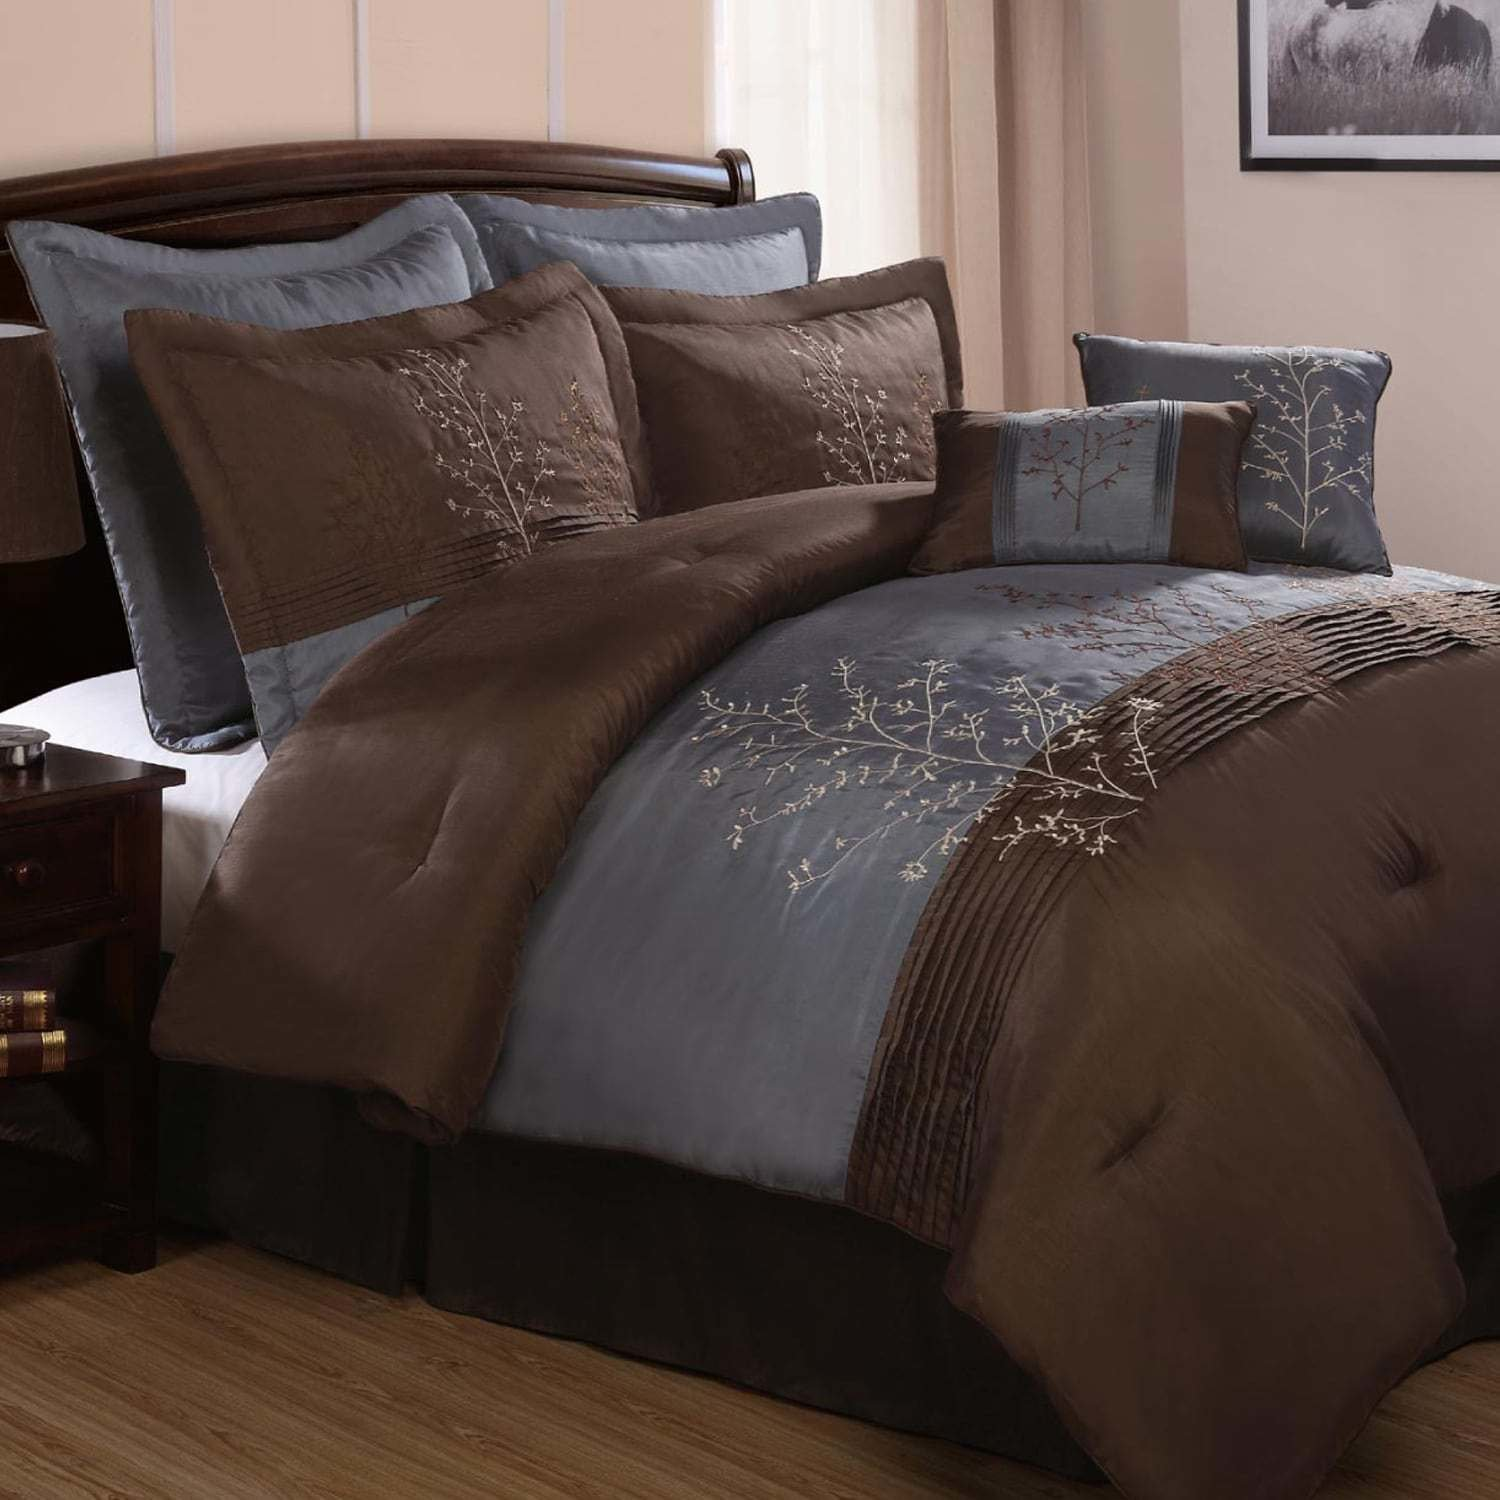 Best Small Handbags Kohls Bedding With Pictures